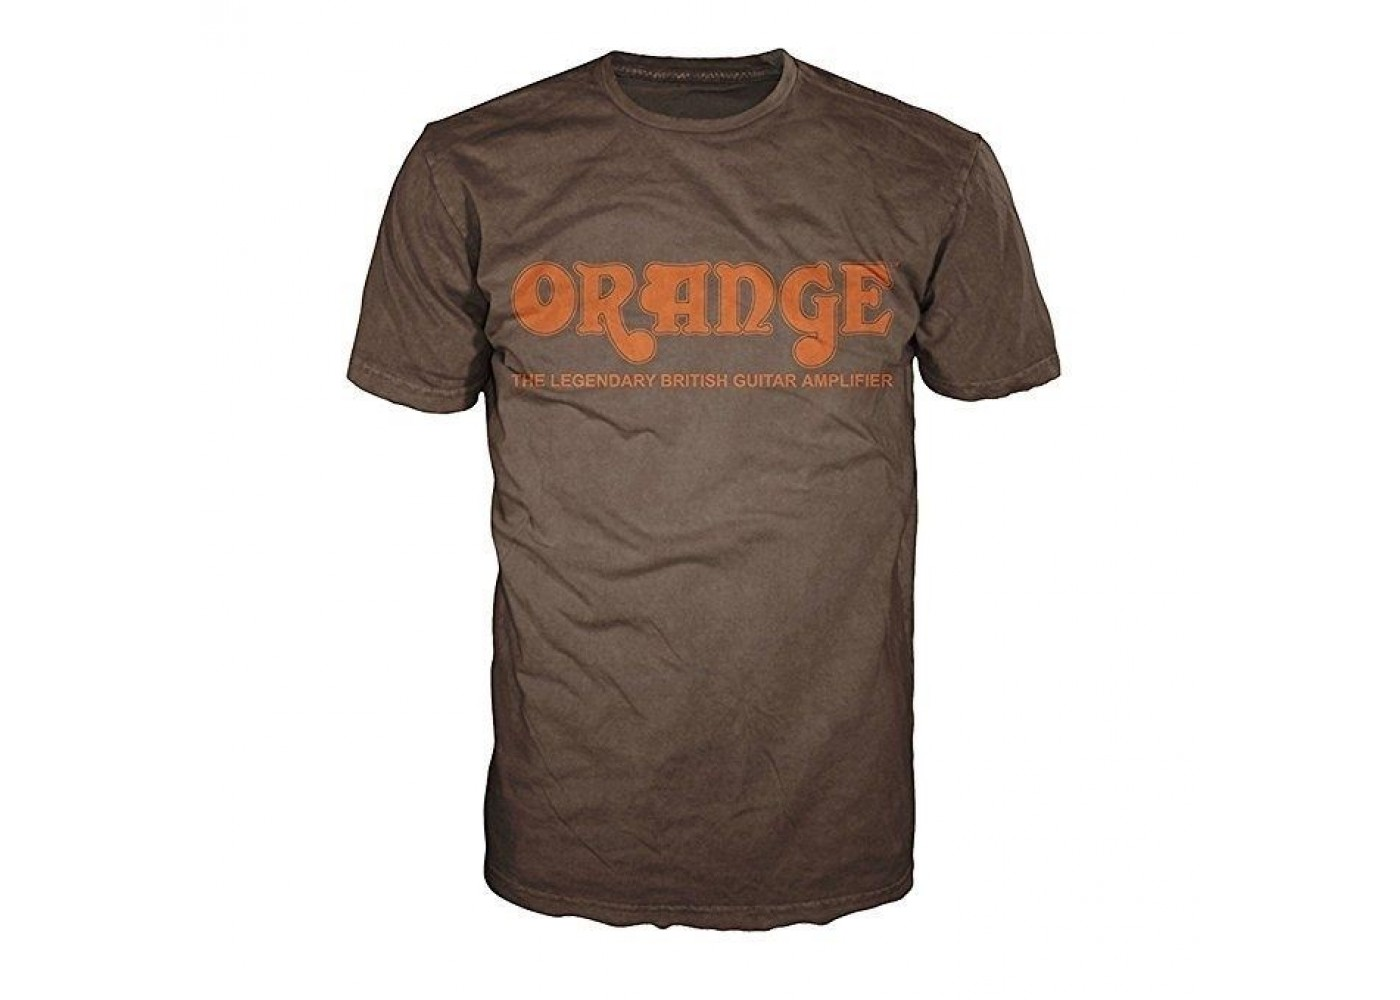 orange amplifiers brown retro logo fitted 100 cotton t shirt men 39 s small new. Black Bedroom Furniture Sets. Home Design Ideas